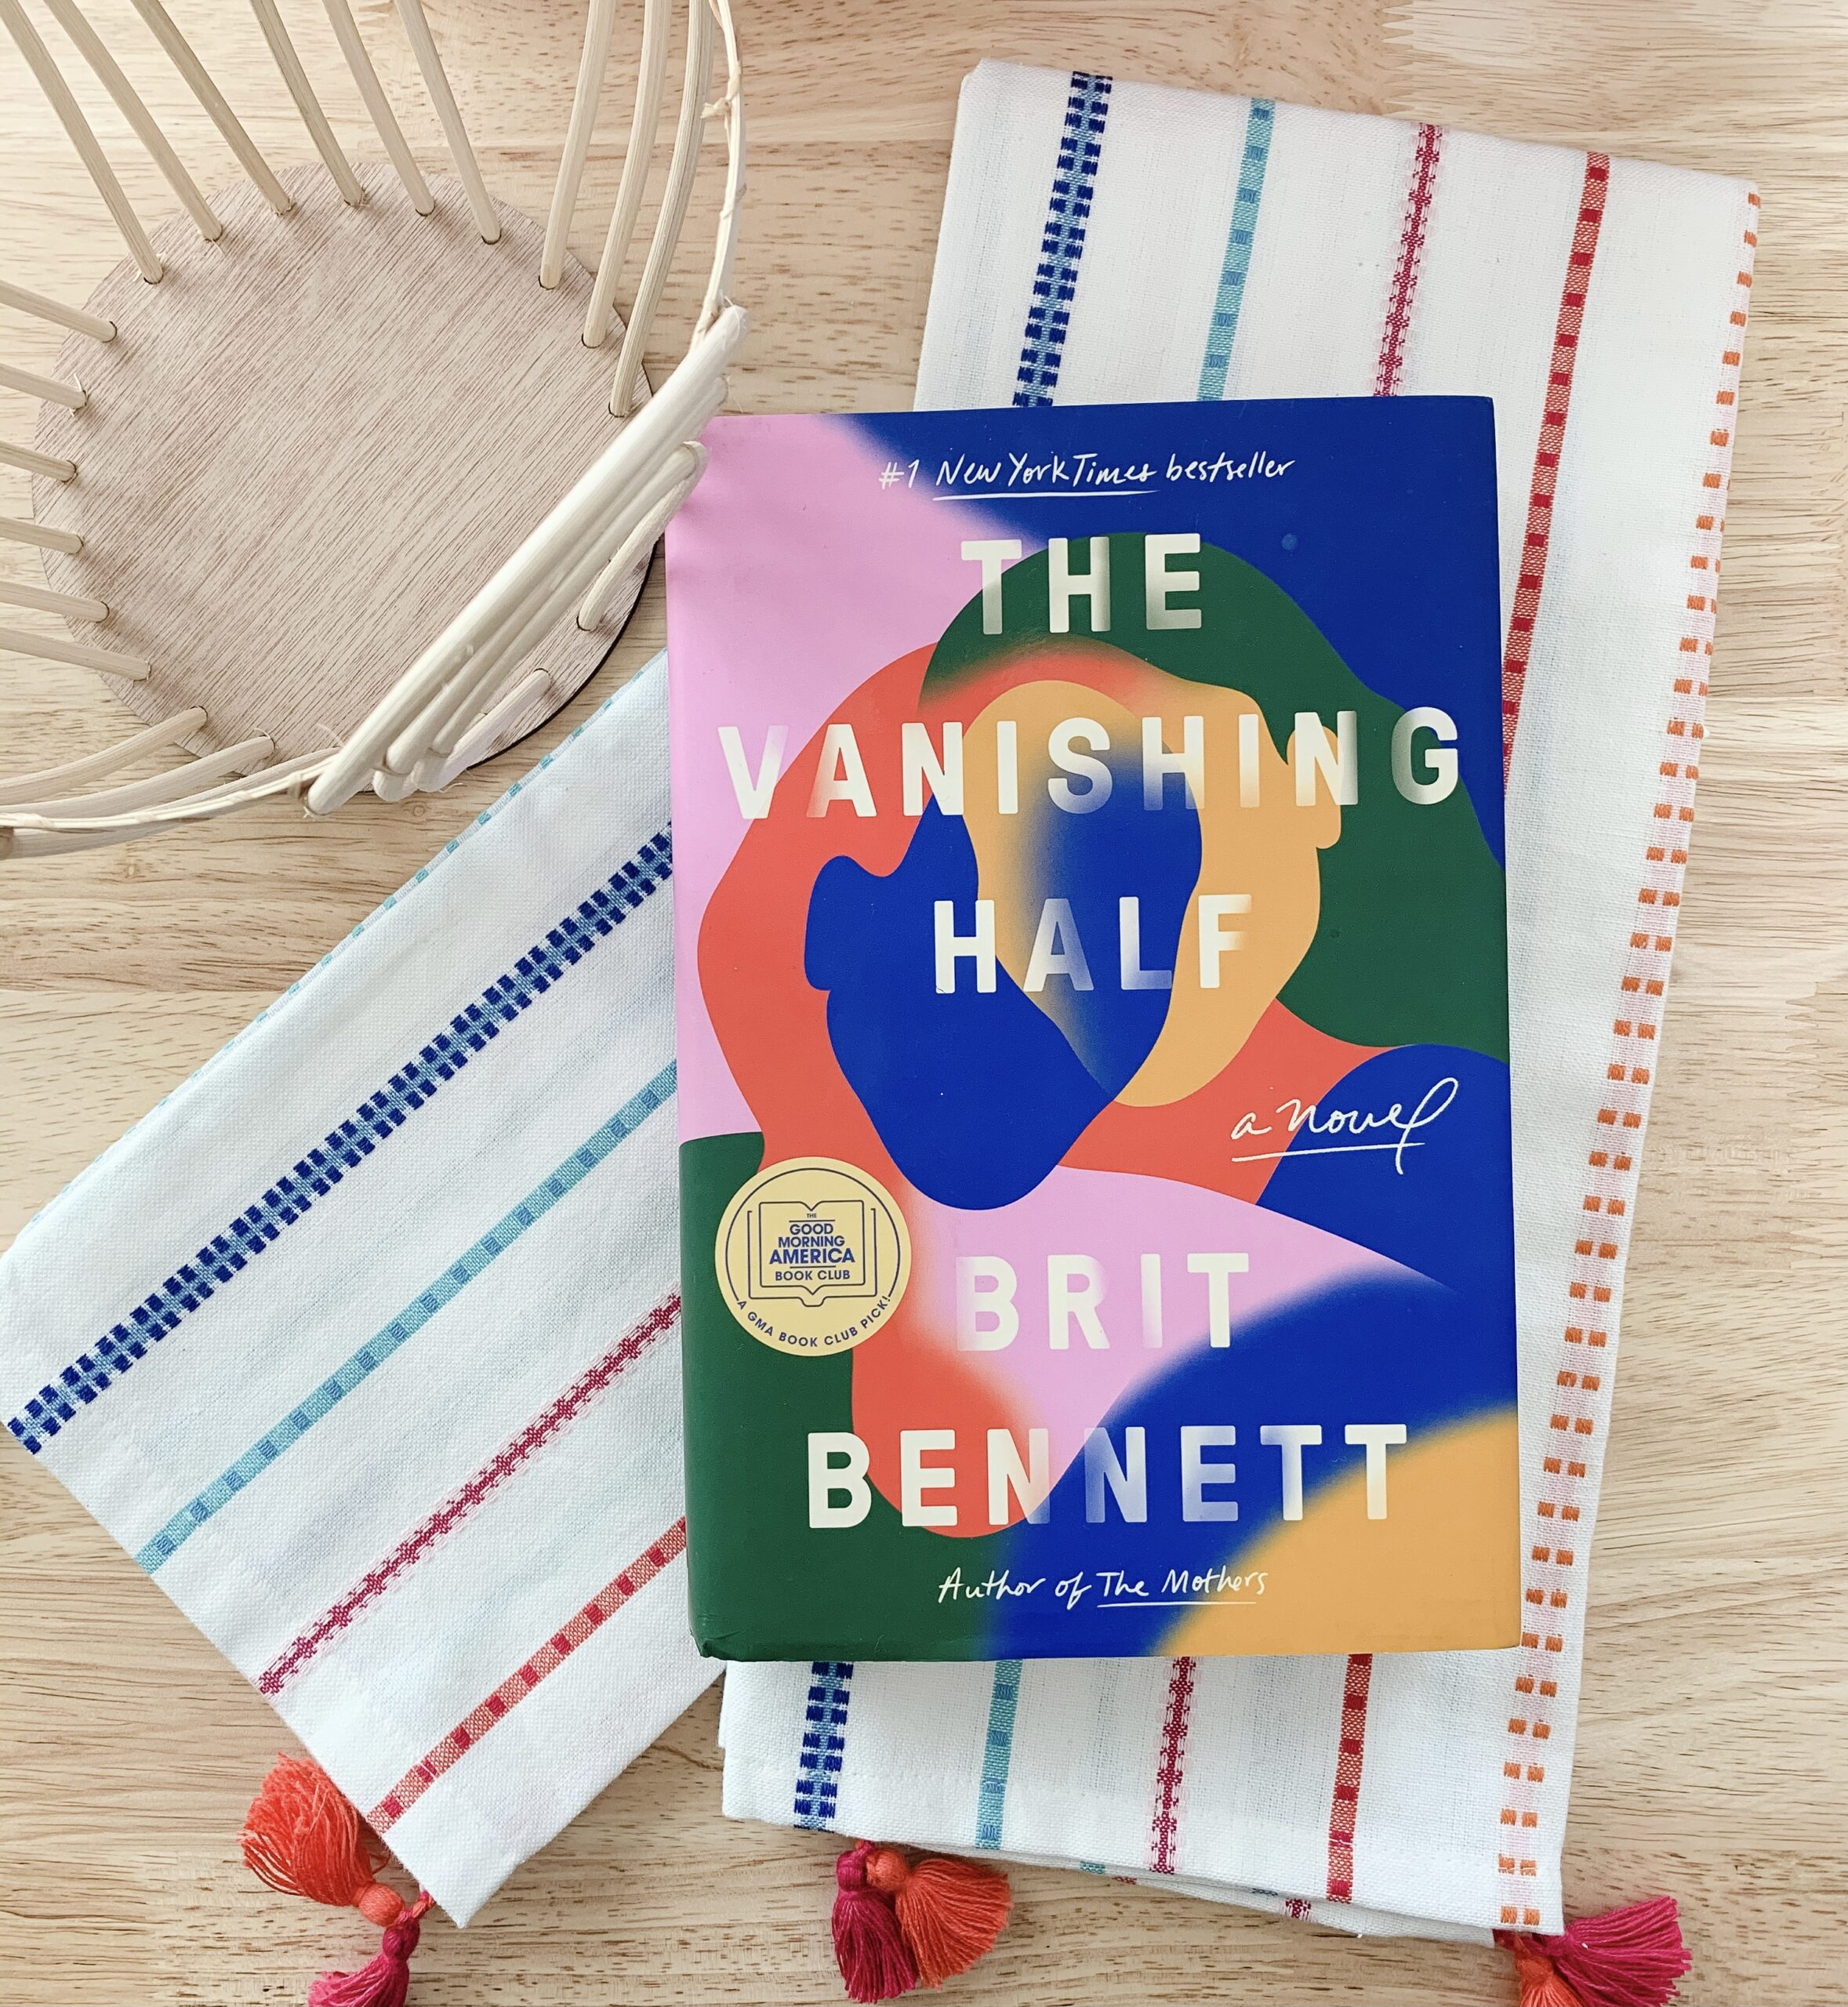 image of bright colored towels and cover of the novel The Vanishing Half by Brit Bennett